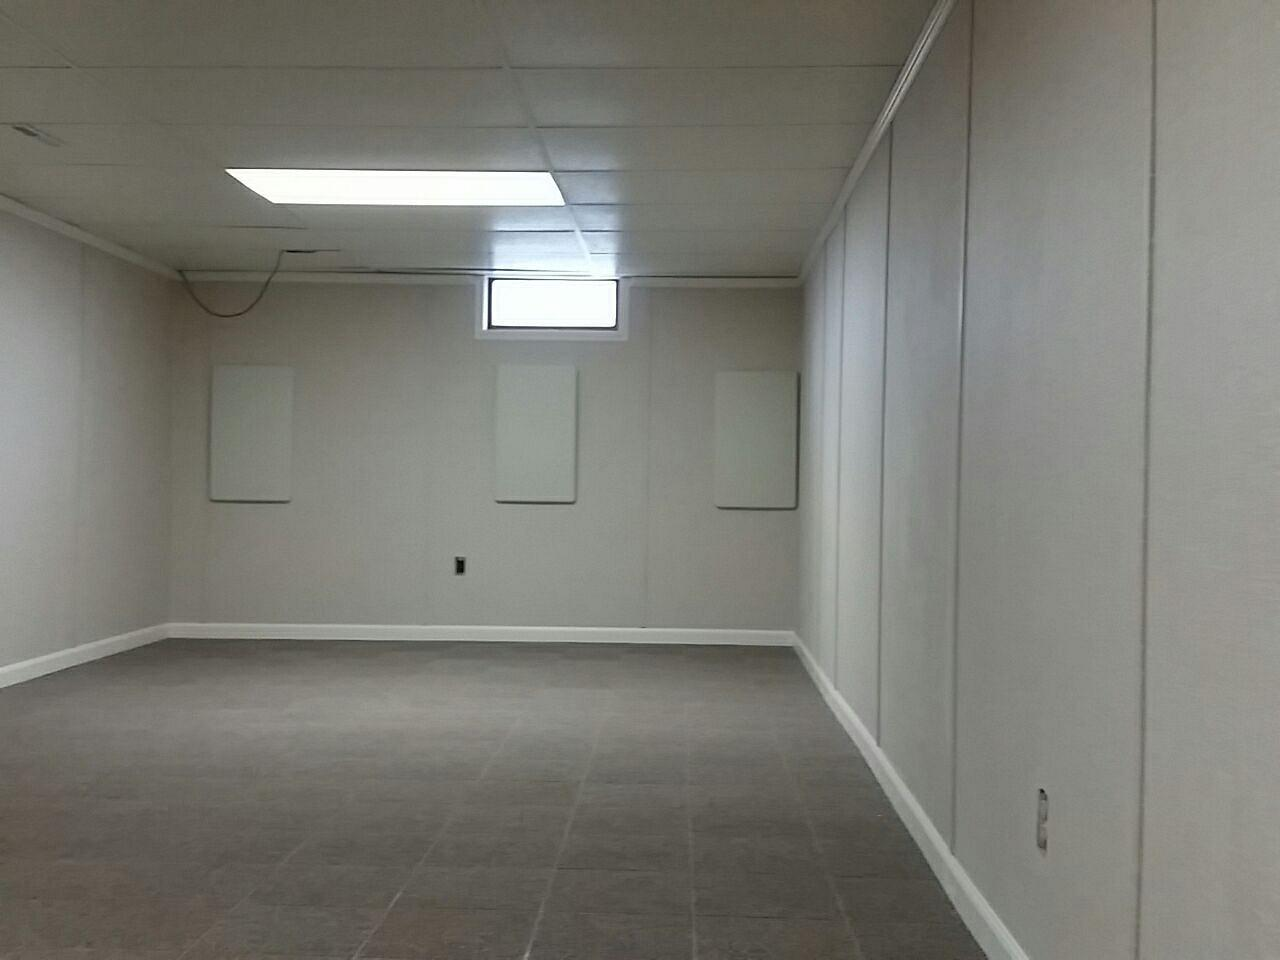 TheremalDry Tiled Basement Flooring can also be mixed and matched to give your basement a custom look.